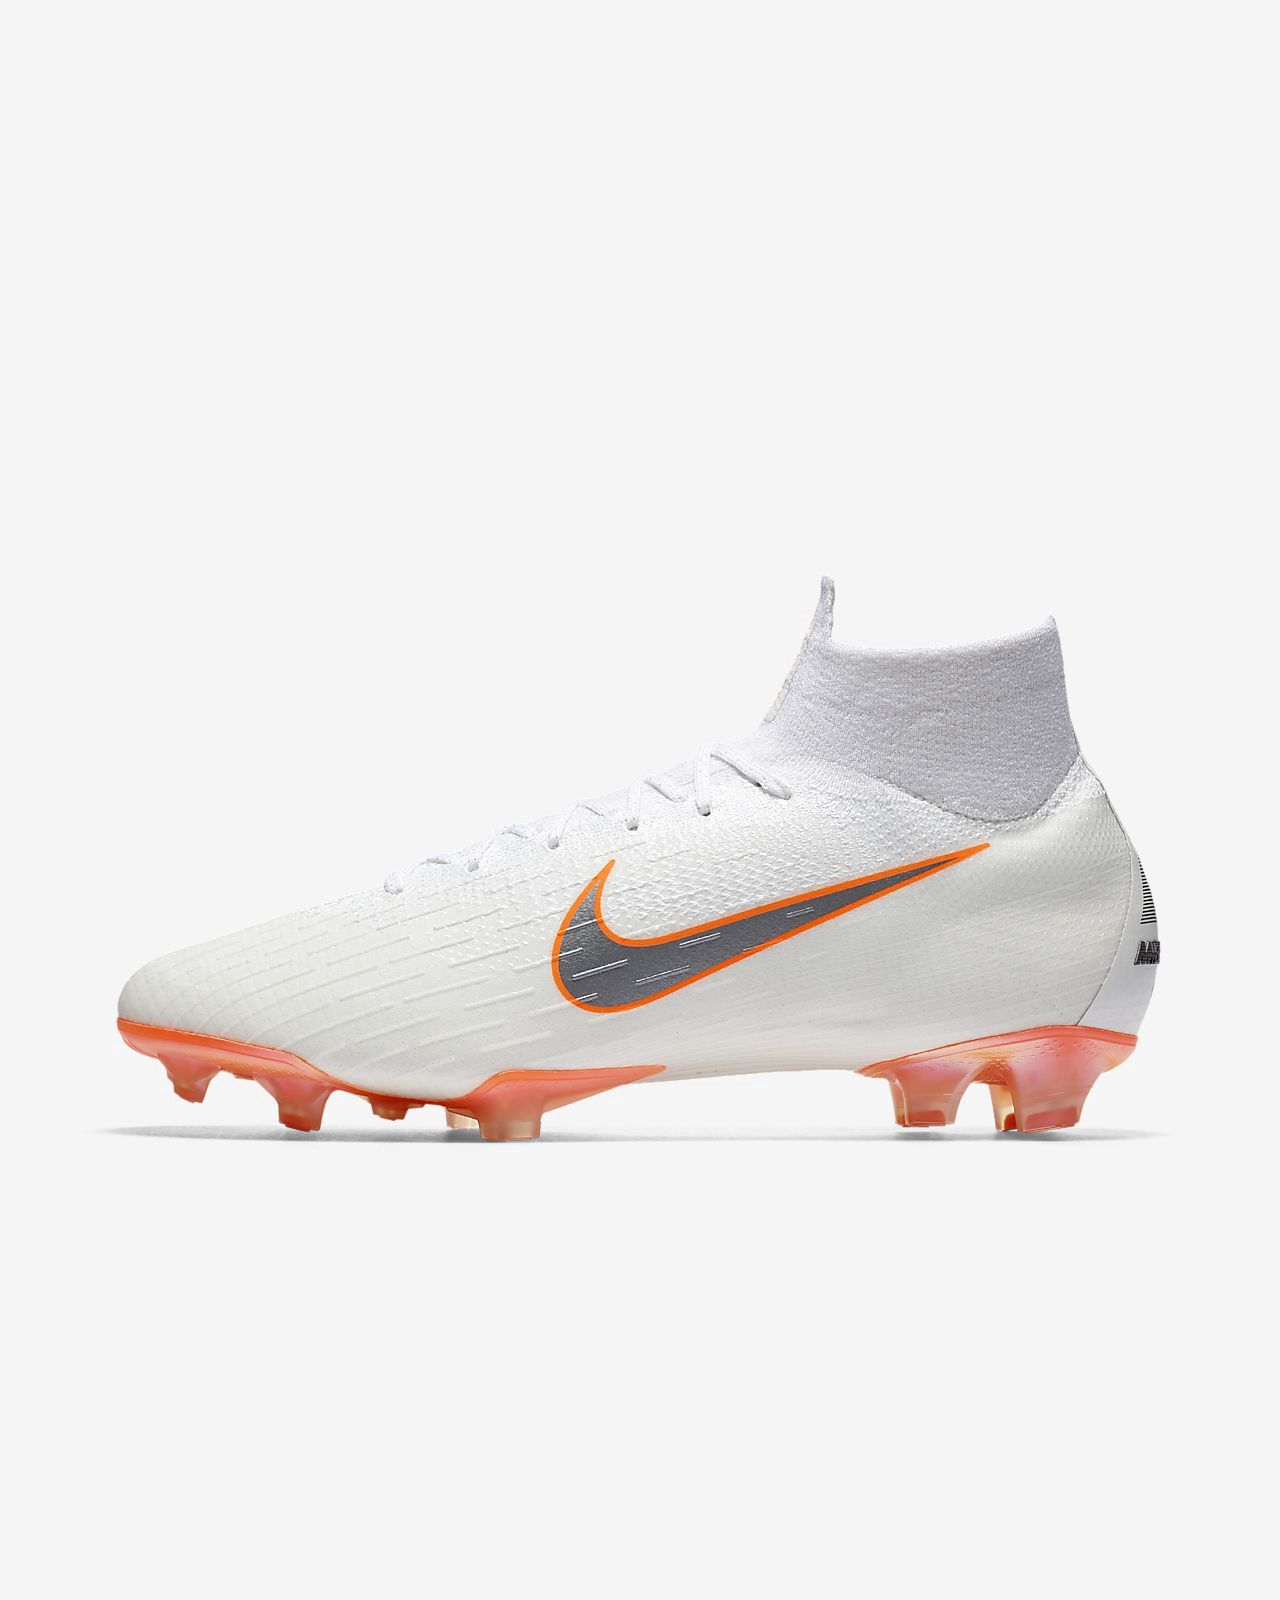 a3422ab340d77 Nike Mercurial Superfly 360 Elite Fg Just Do It Firm-Ground Soccer Cleat -  M 11   W 12.5